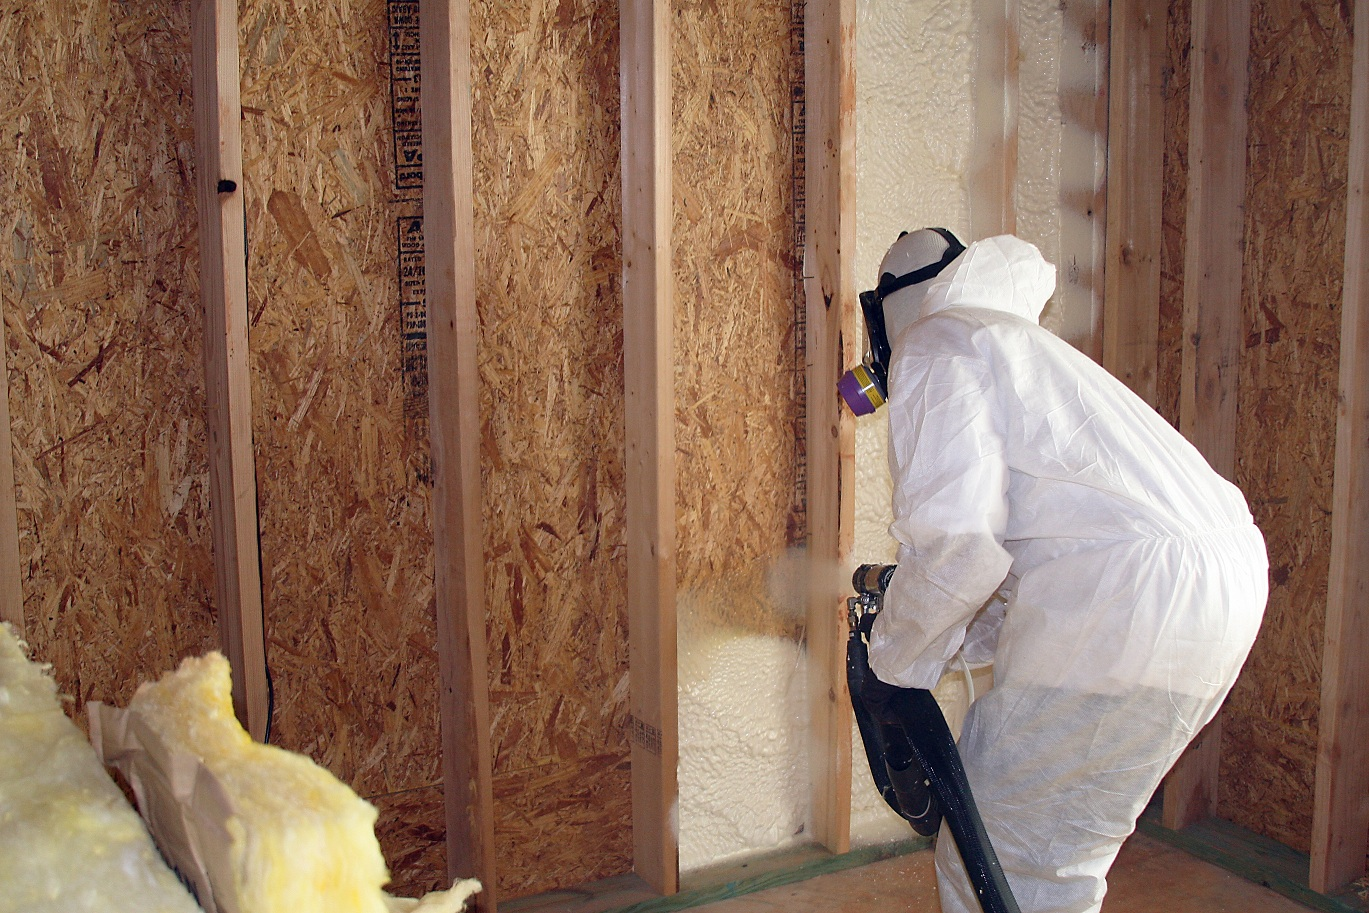 Installing spray foam insulation to your home spray foam professional spray foam installation solutioingenieria Images